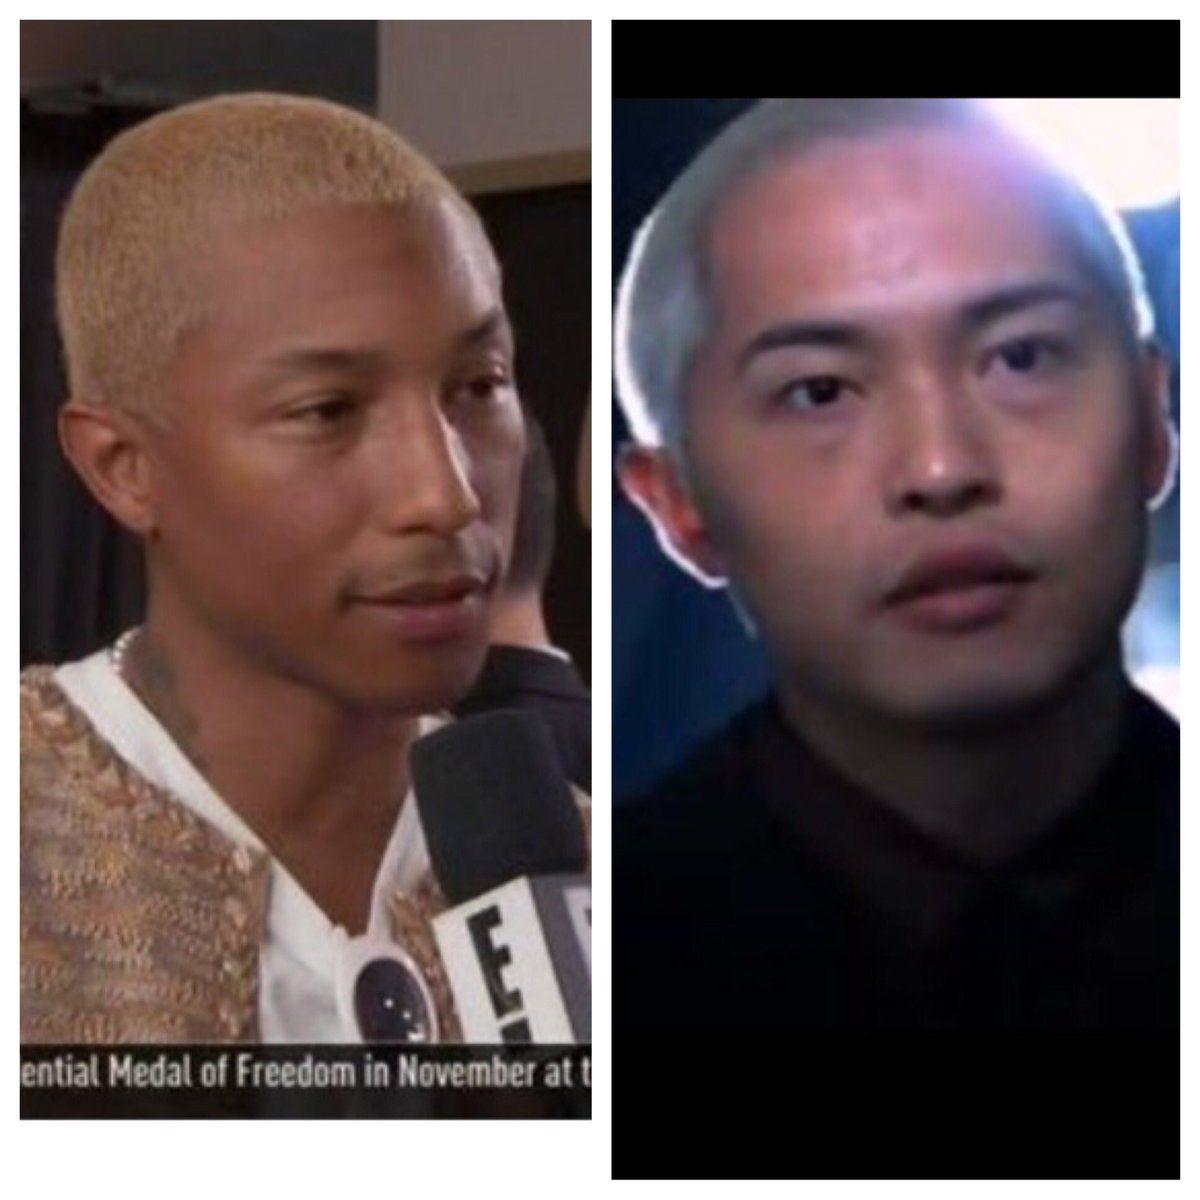 Pharrell out here looking like he just kidnapped Su-Yung https://t.co/1hs9CEklk3